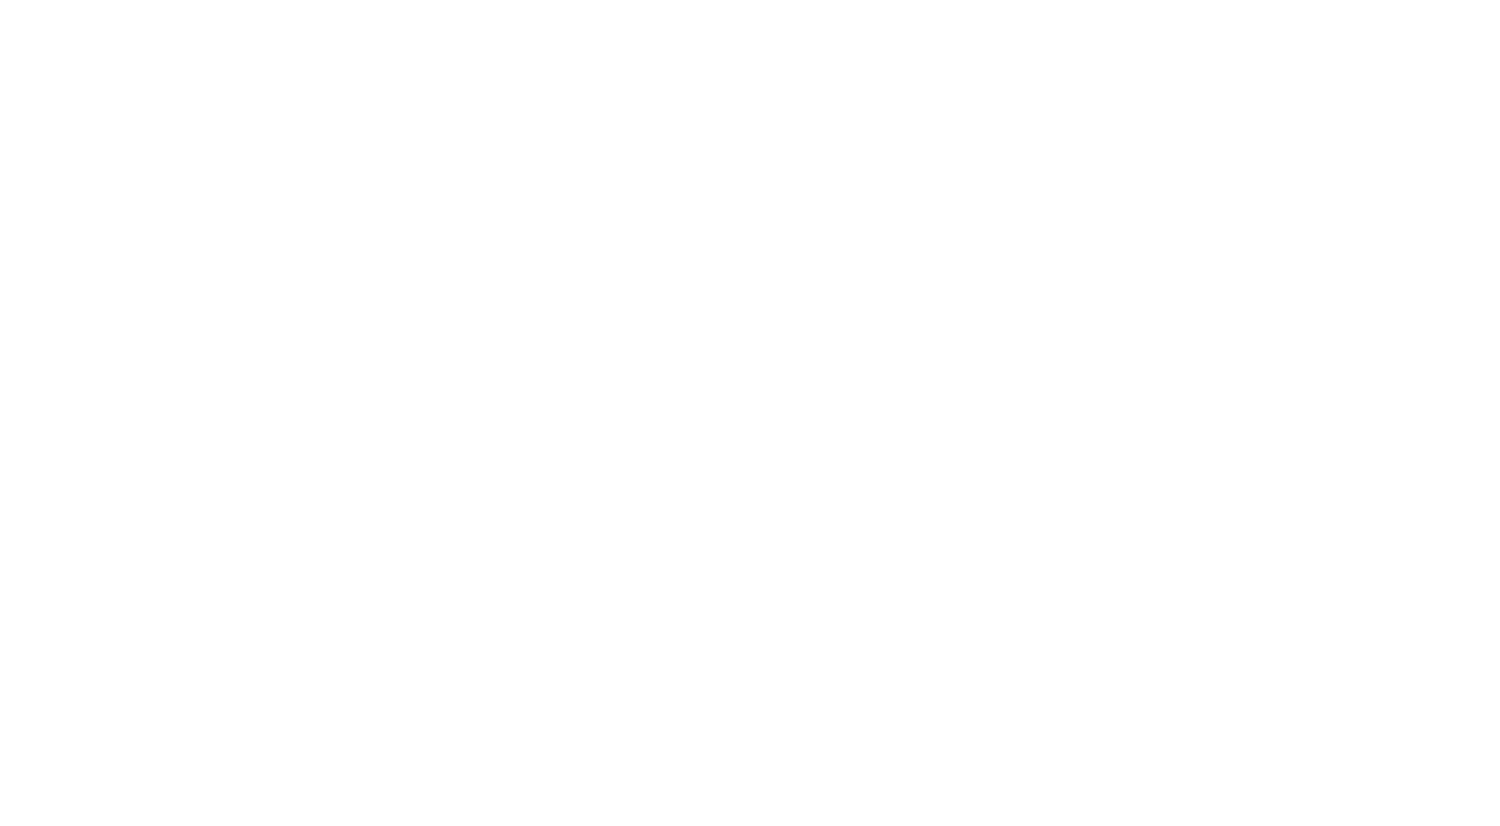 Dark Horse Coffee Roasters